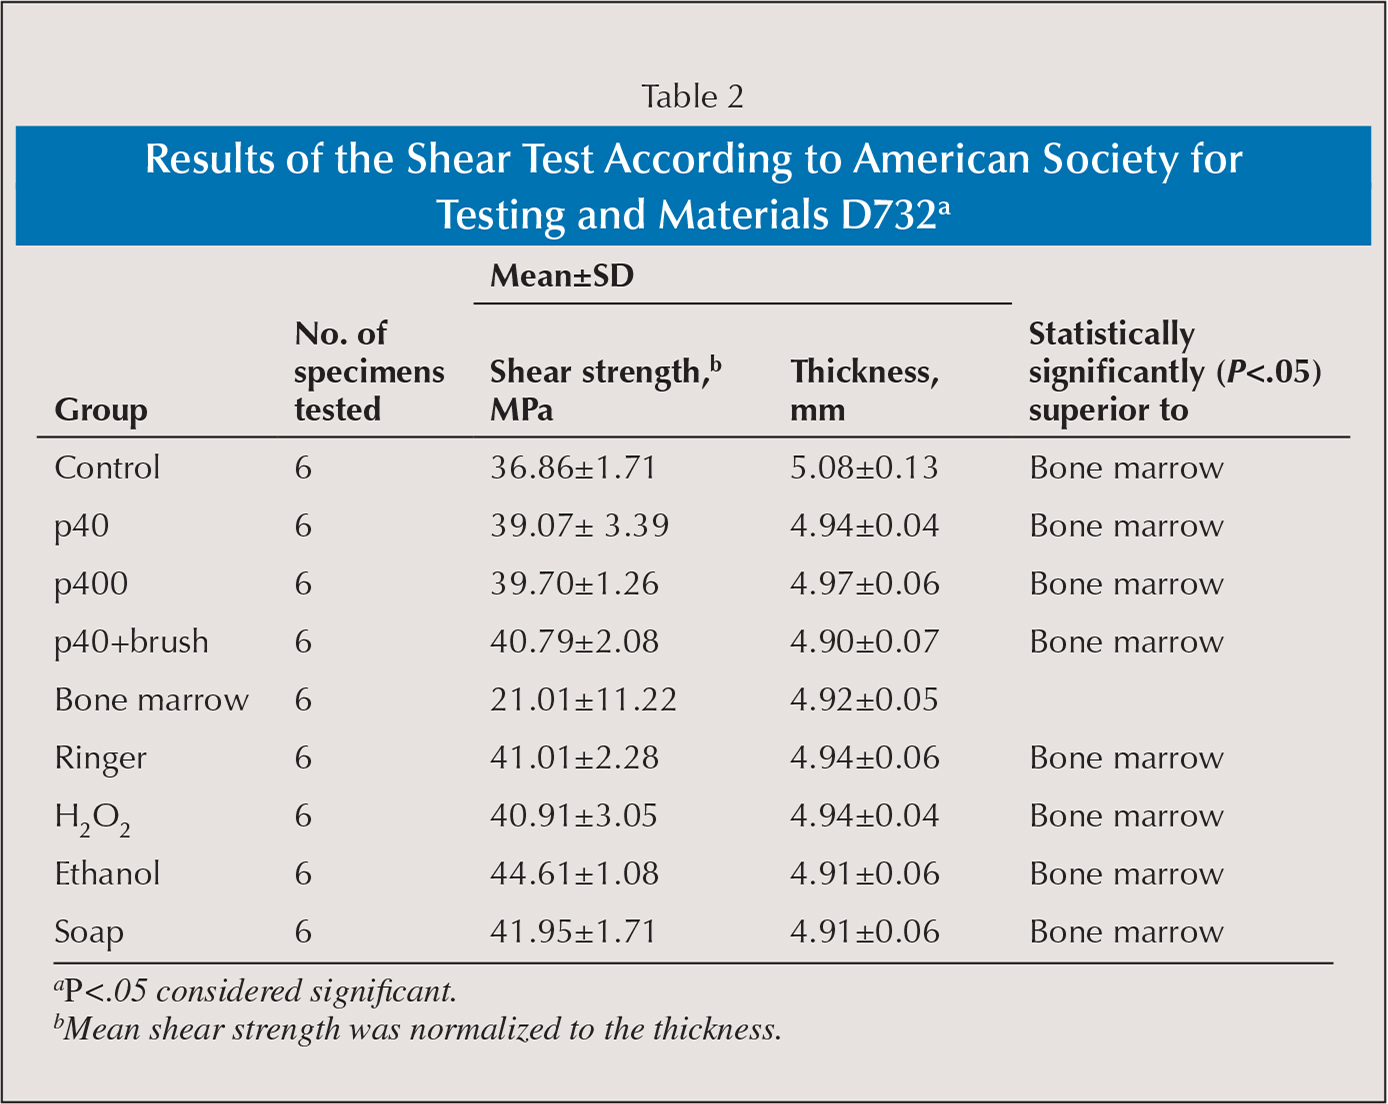 Results of the Shear Test According to American Society for Testing and Materials D732a